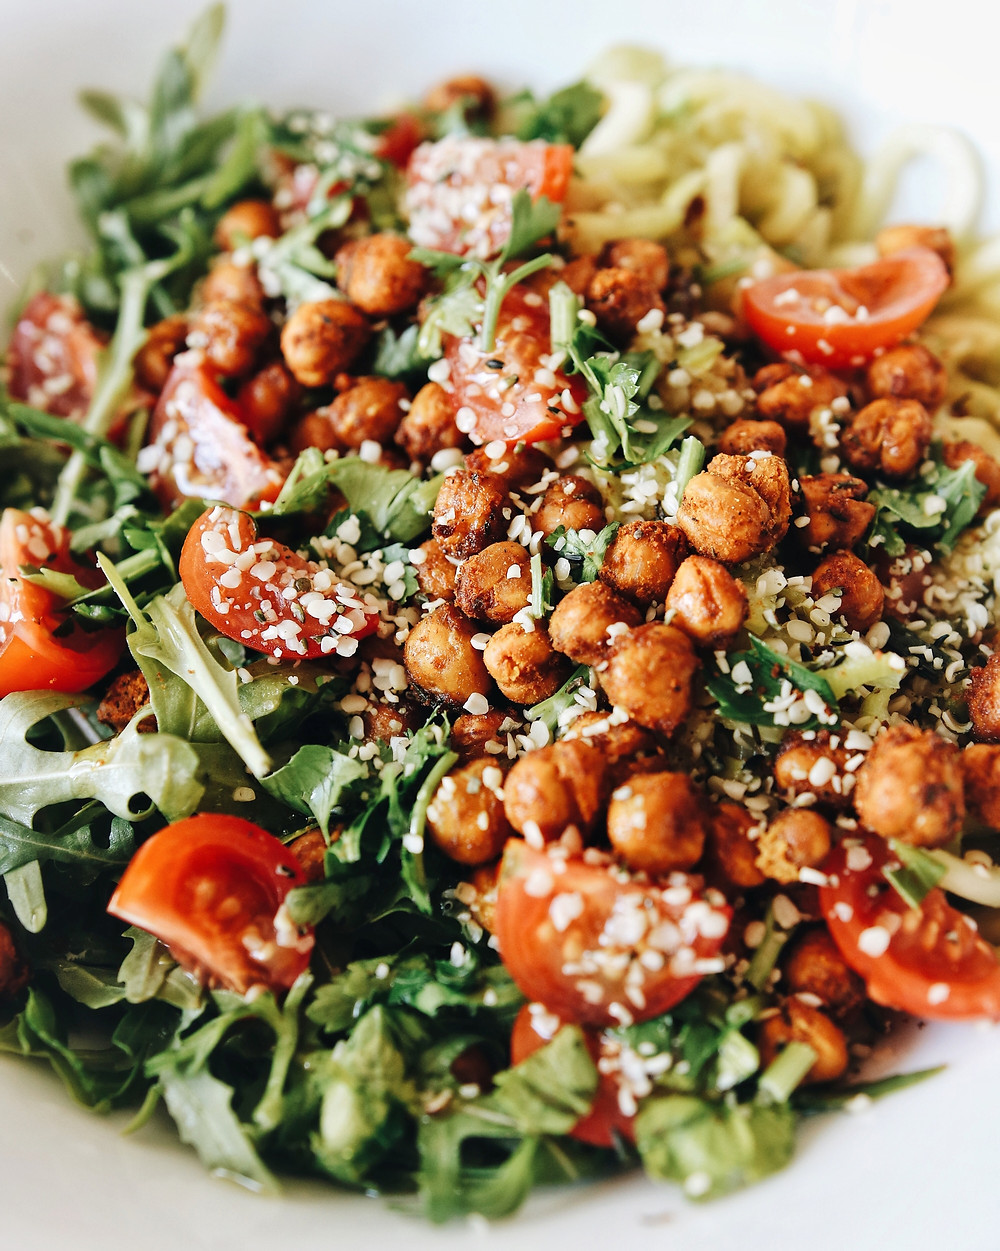 A closeup of a zucchini noodle salad featuring crispy spicy chickpeas and hemp seeds.